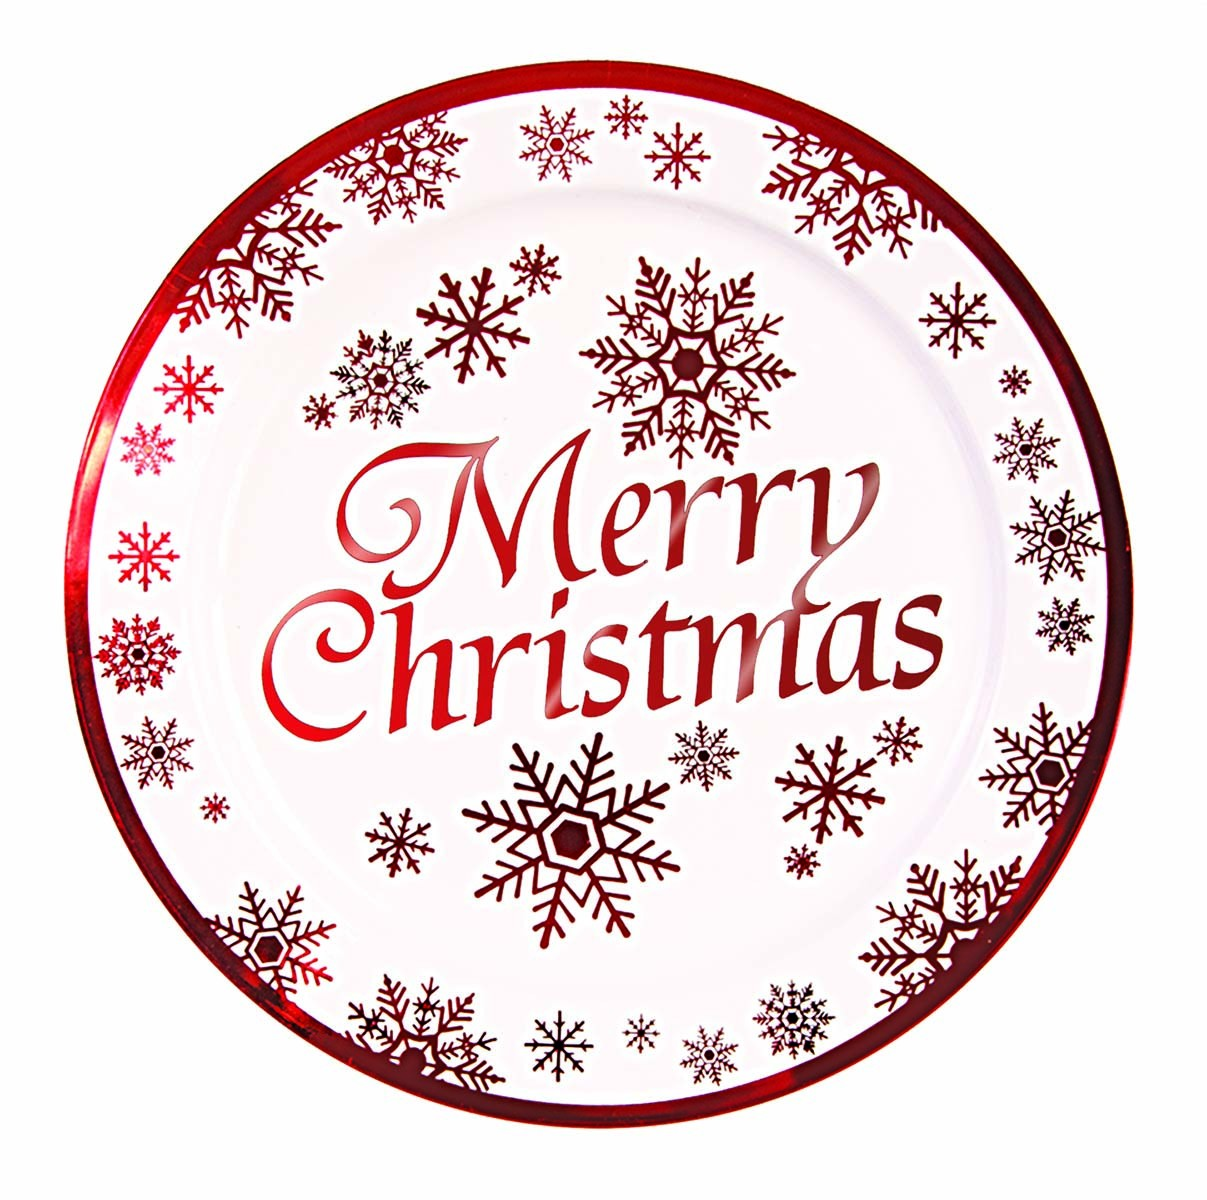 """Merry Christmas"" Large Plastic Plates 10.25"" (10 Count) (Pkg/1)"